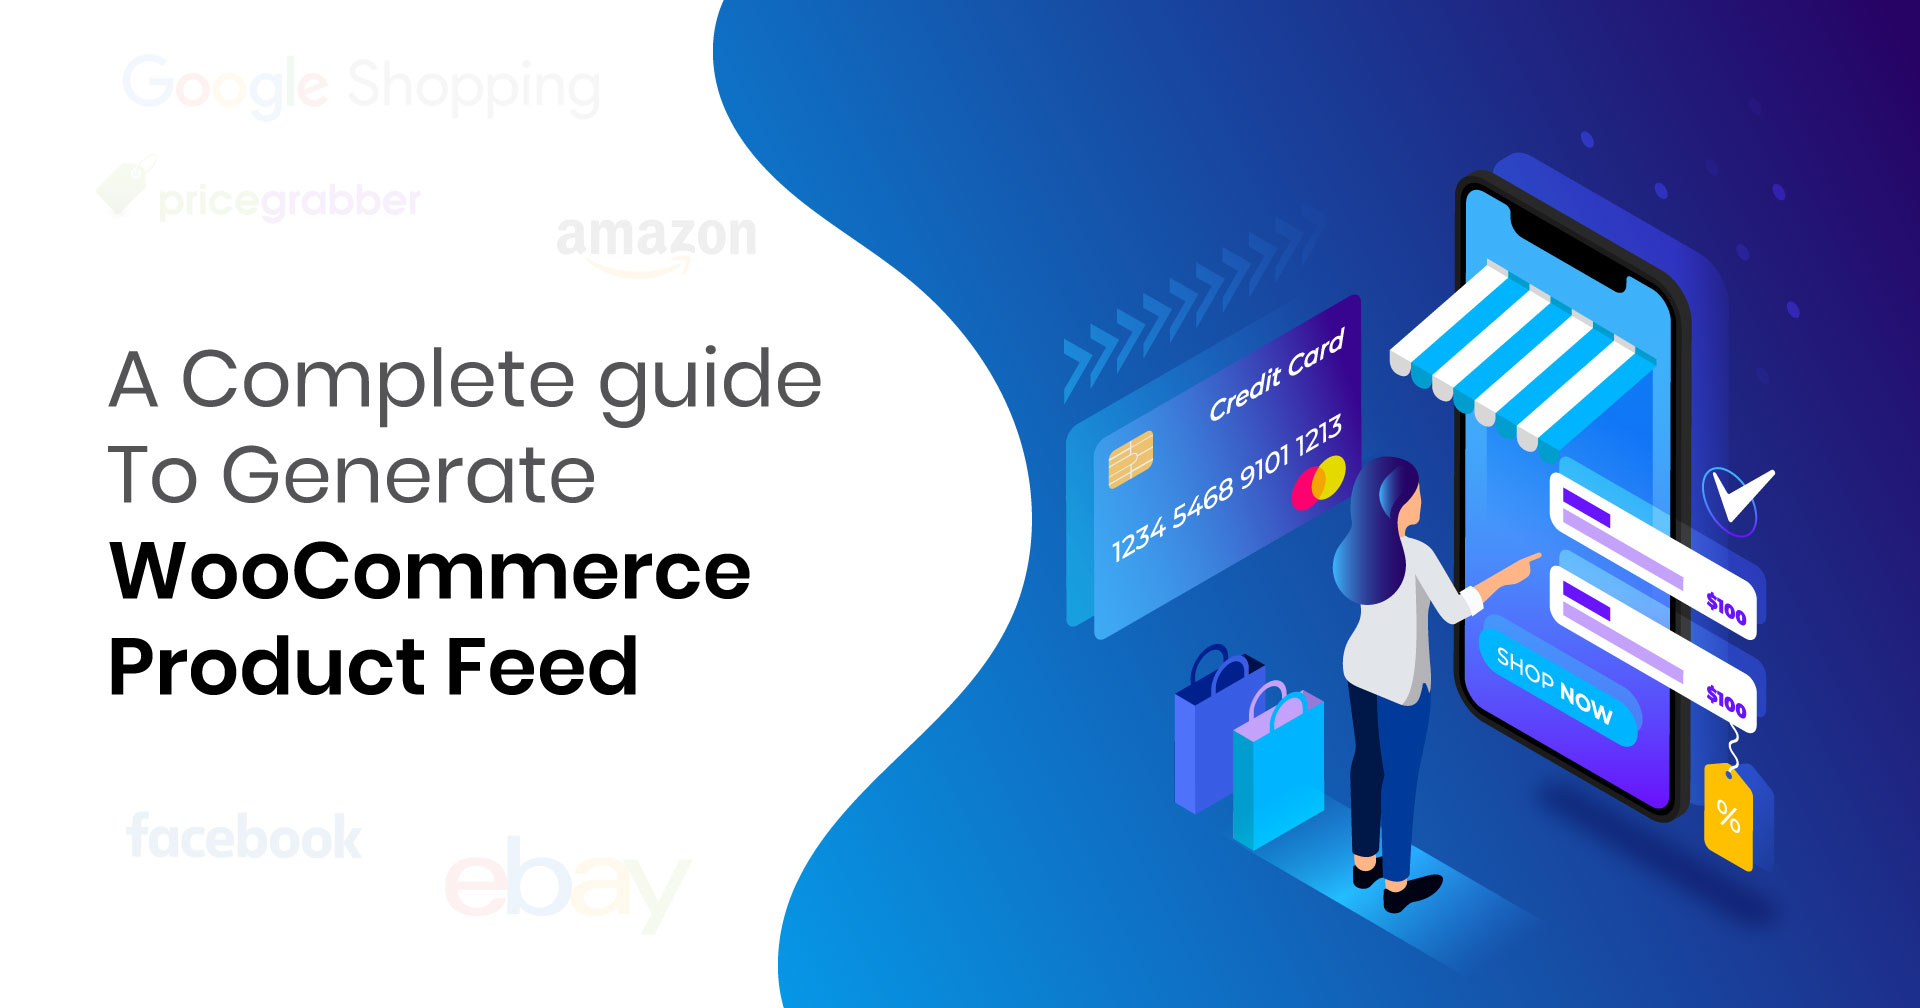 A Complete Guide To Generate WooCommerce Product Feed [2019]